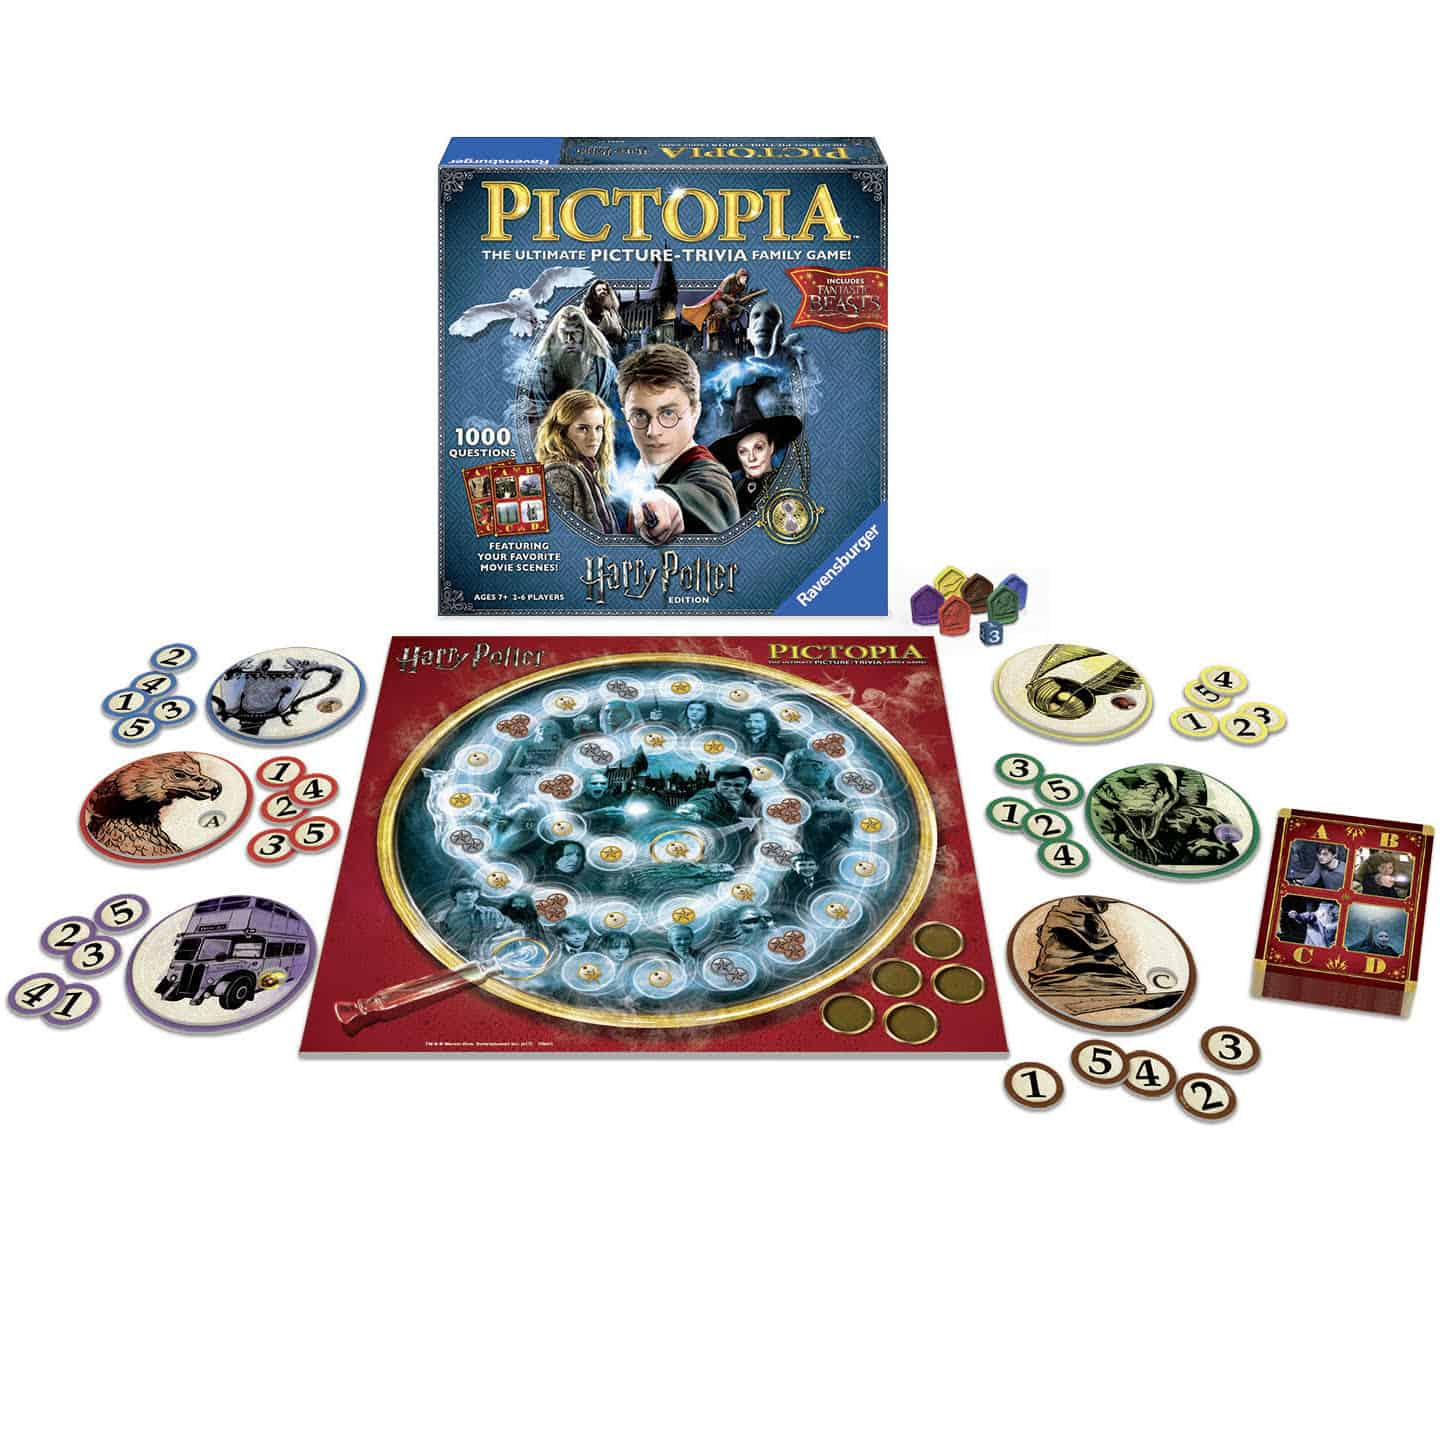 Harry potter pictopia review